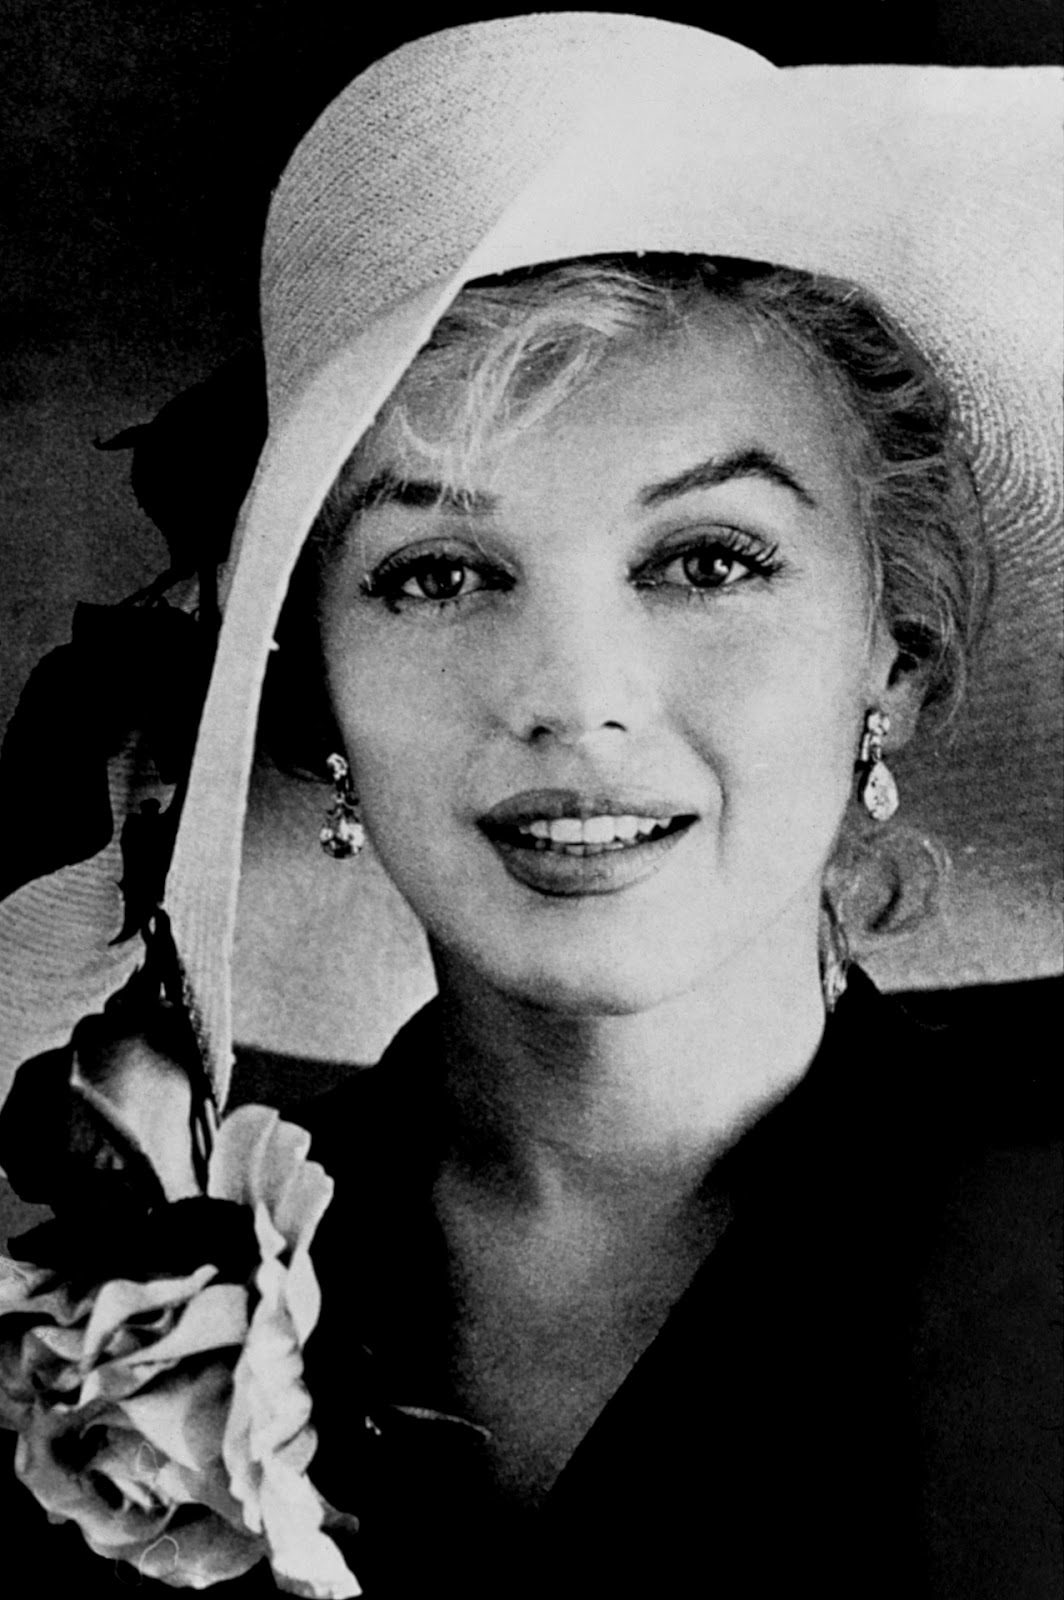 Today's News: Marilyn Monroe - Biography